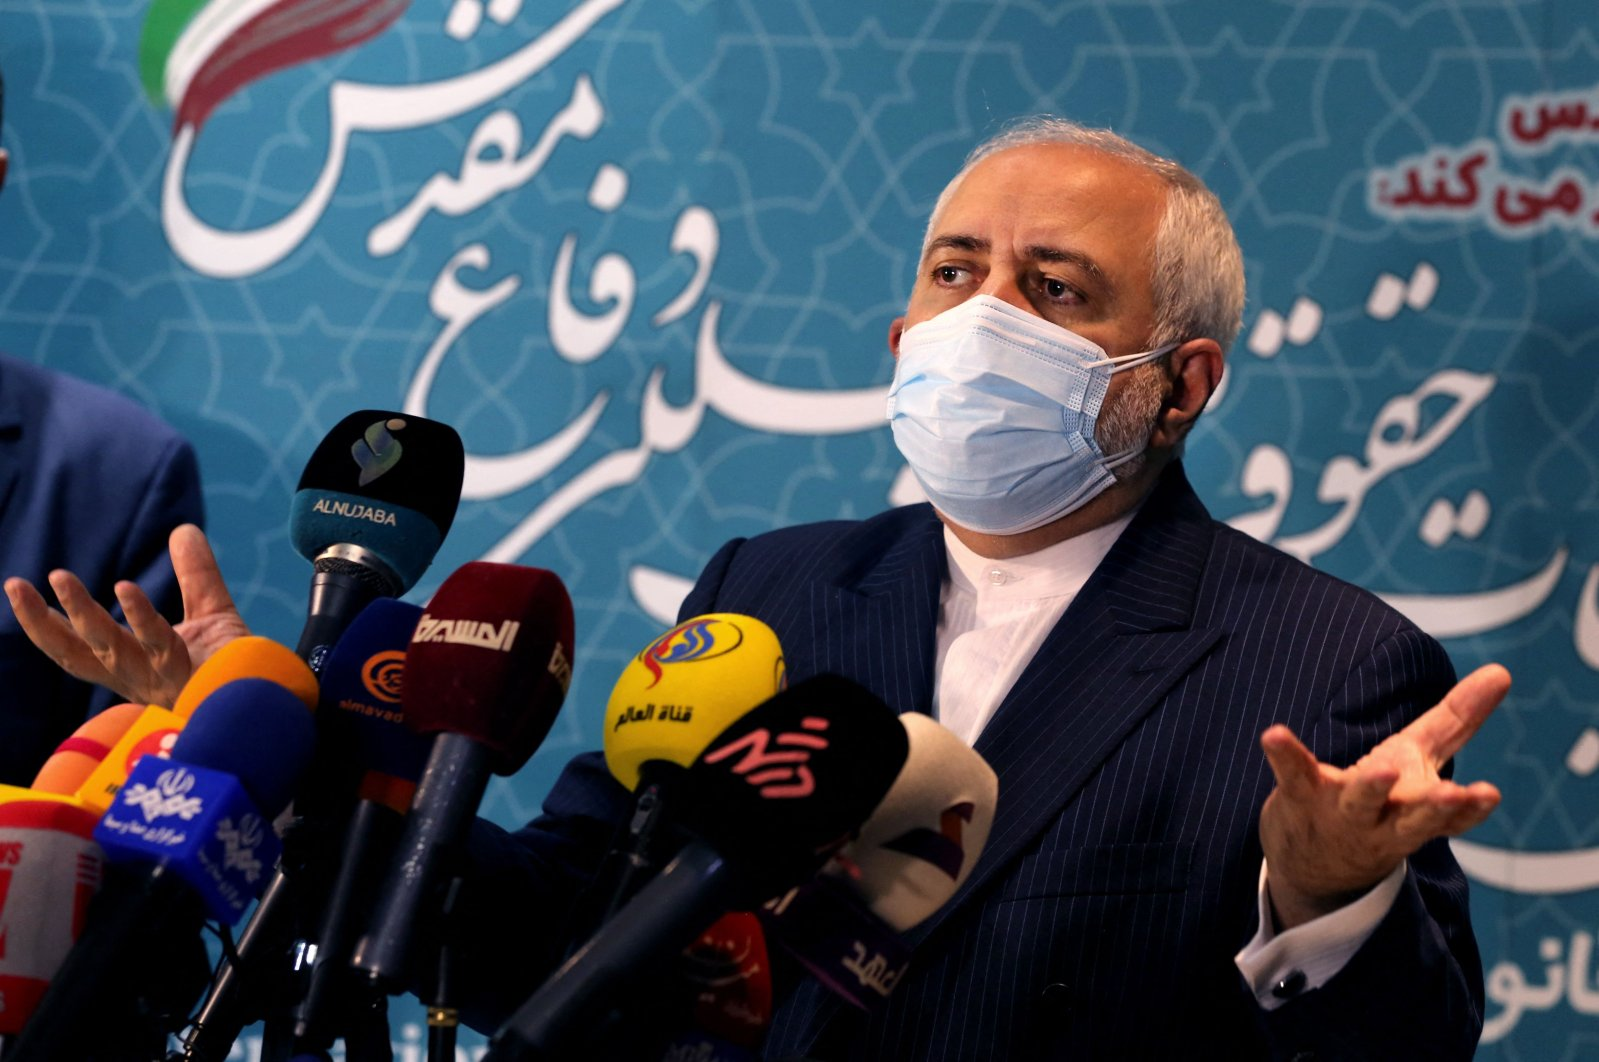 Iranian Foreign Minister Mohammad Javad Zarif speaks during a press conference at the International Conference on the Legal-International Claims of the Holy Defense, in Tehran, Iran, Feb. 23, 2021. (AFP Photo)